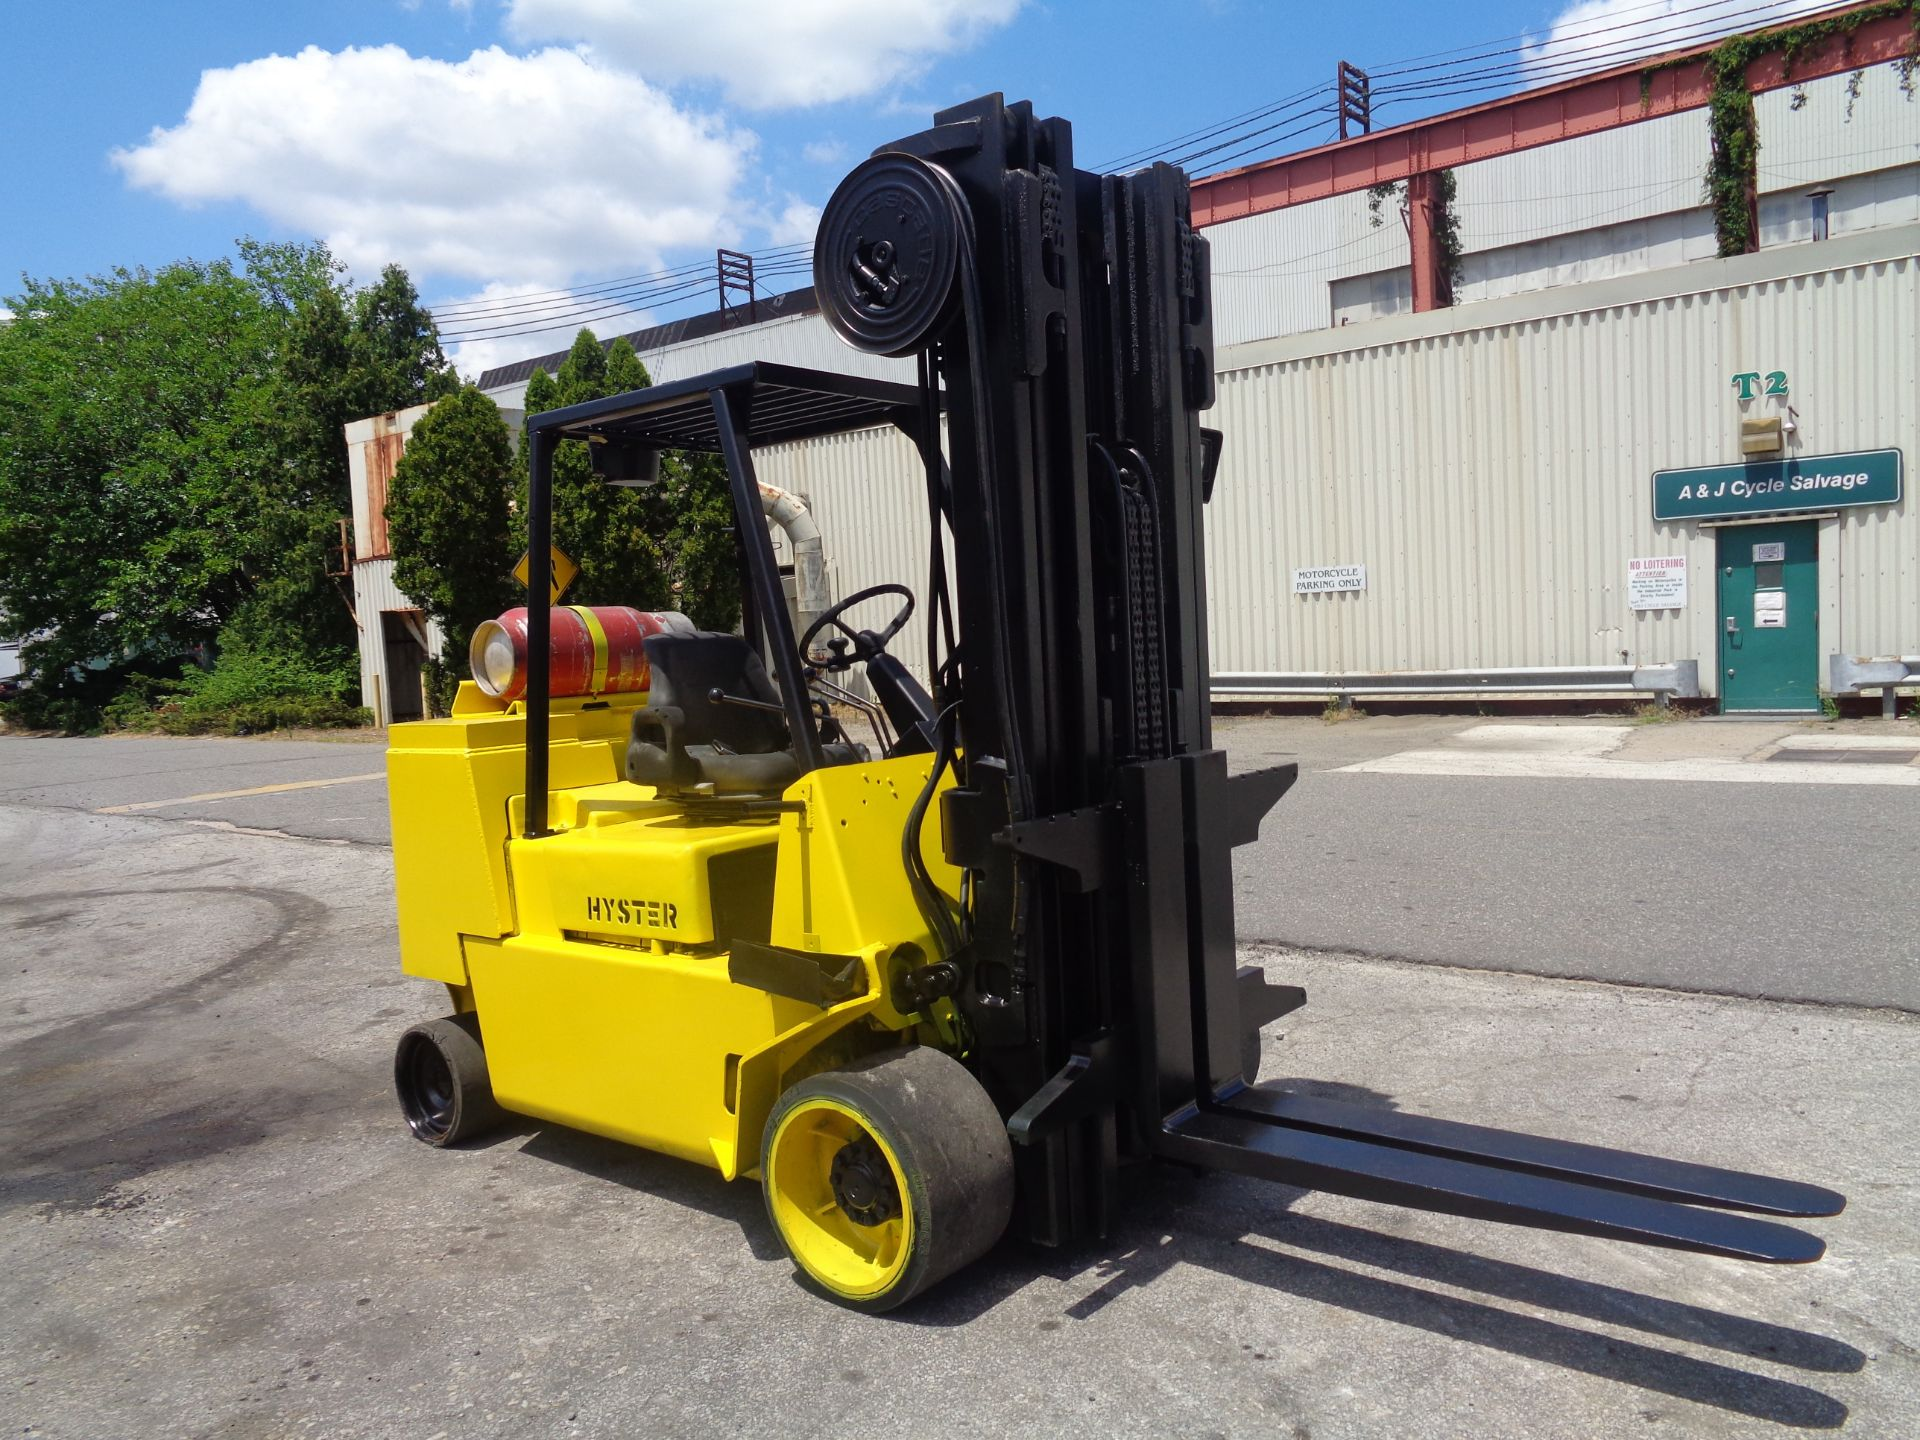 Hyster S120XL 12,000lb Forklift - Image 9 of 14